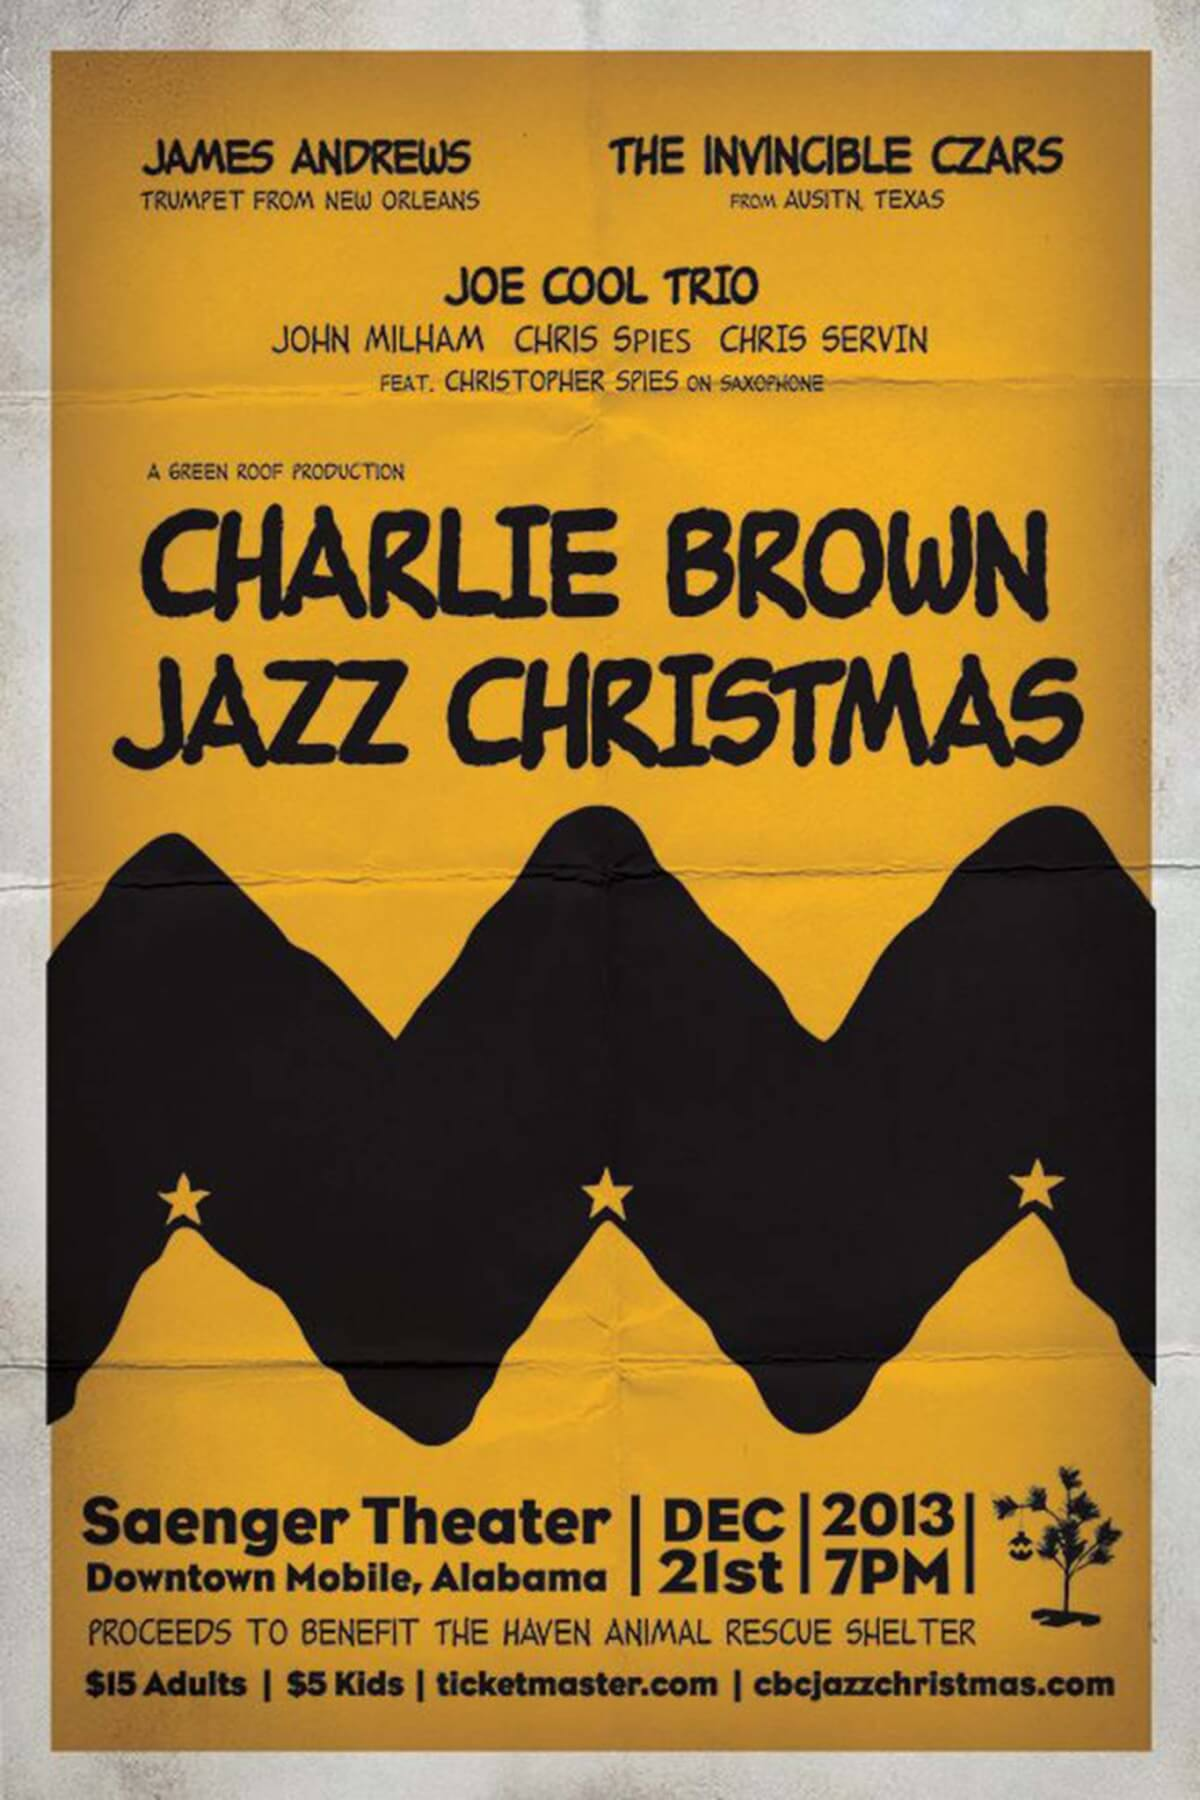 Charlie Brown Jazz Christmas returns to Saenger for a longer show